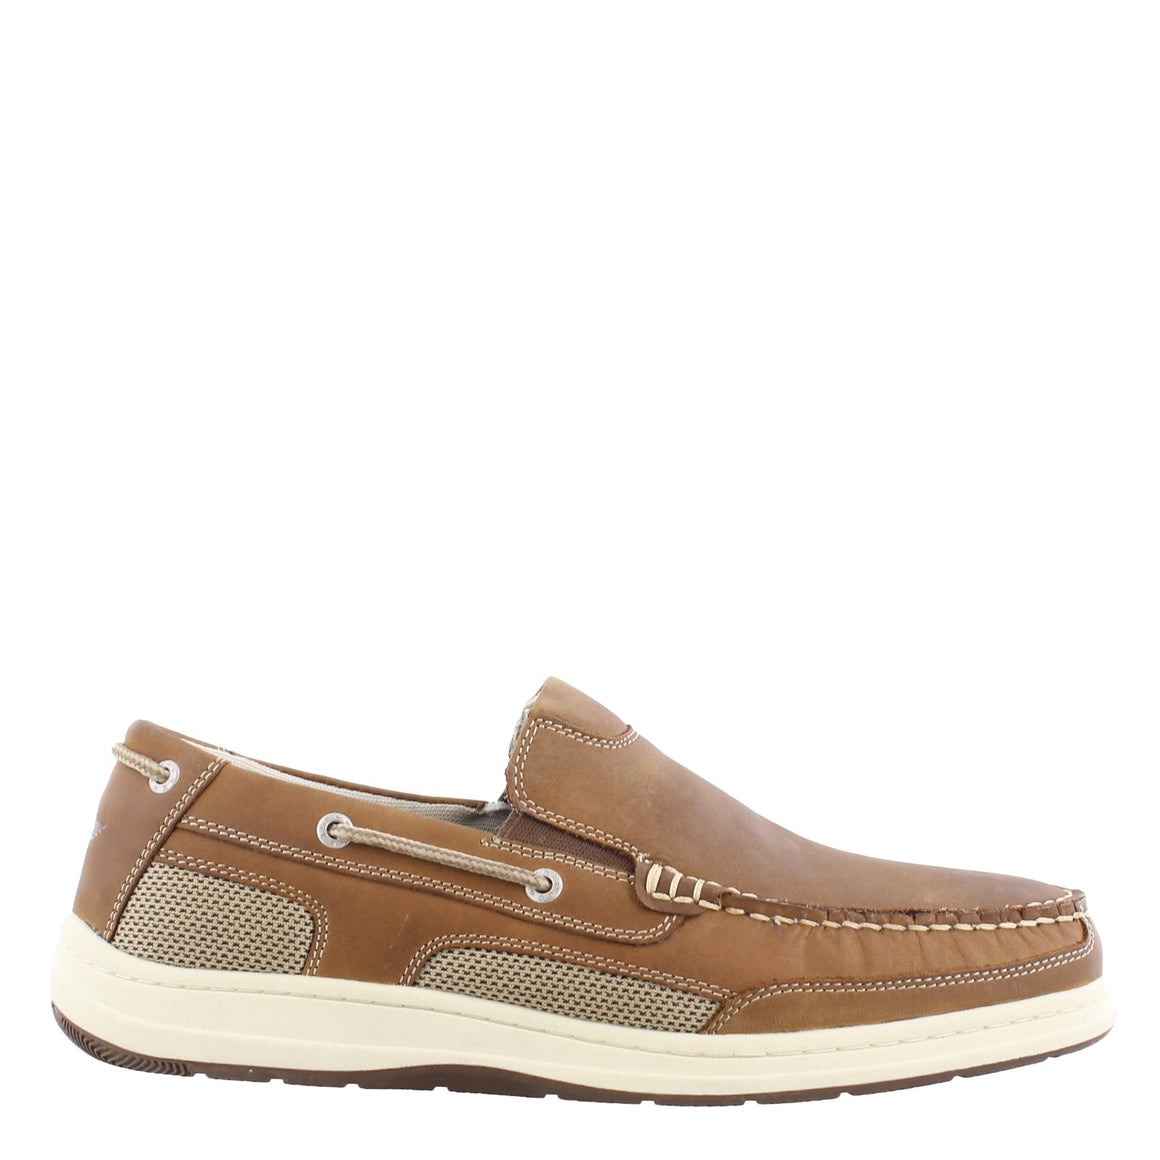 Dockers Men's Tiller Slip On Boat Shoe - Dark Tan 90-38623 - ShoeShackOnline